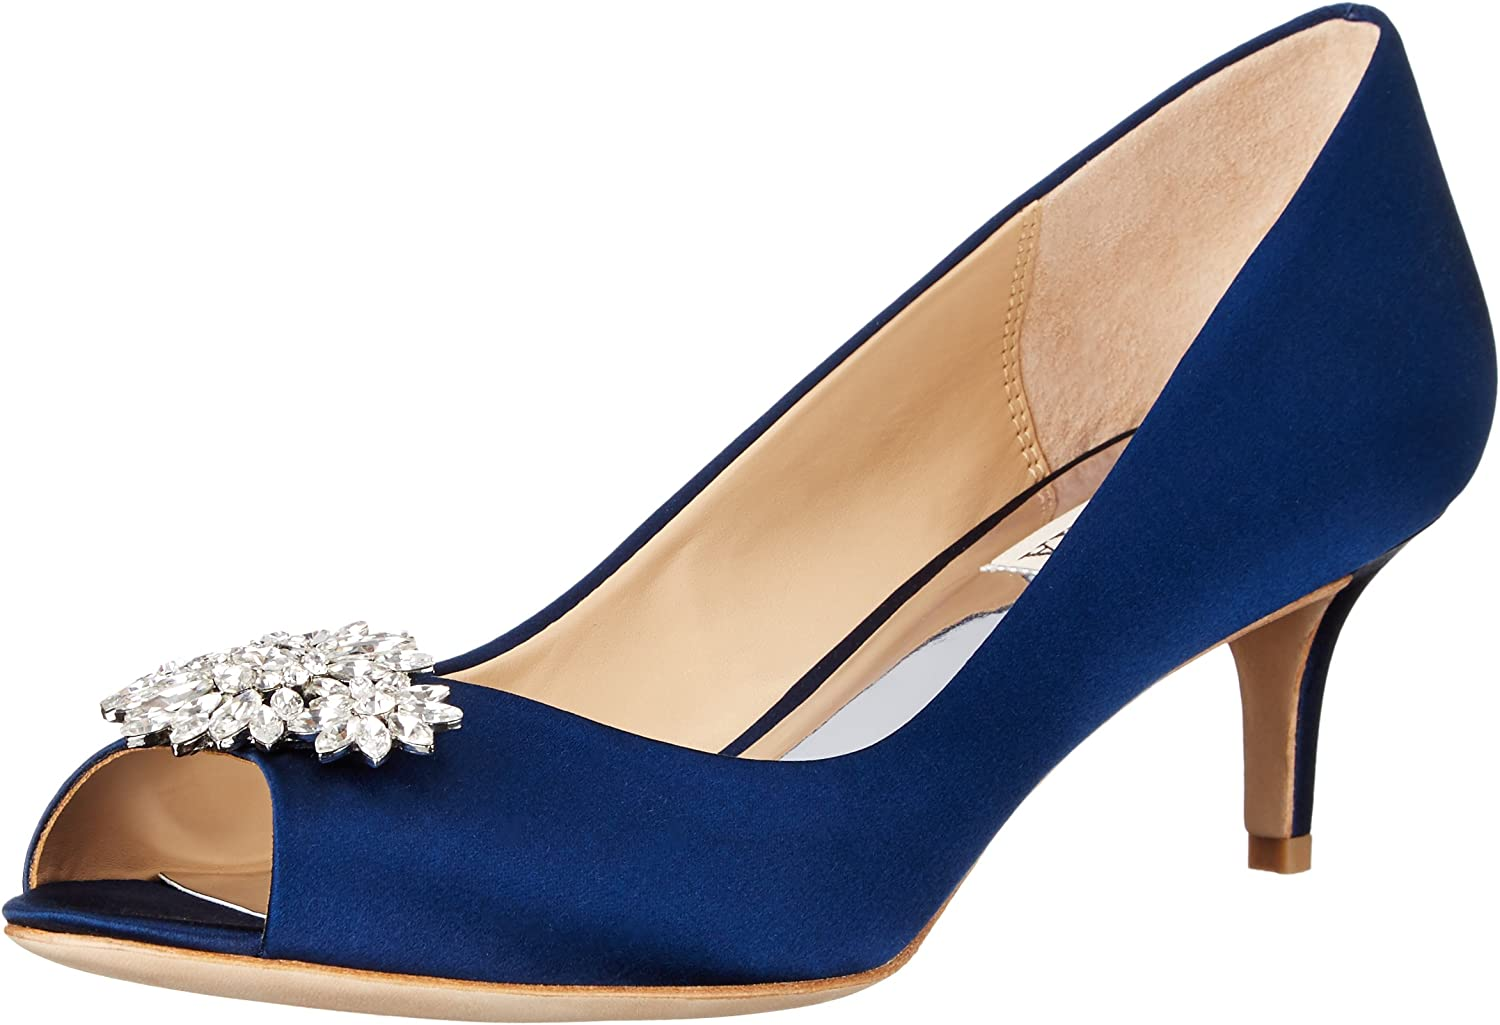 Badgley Mischka Womens Nakita Dress Pump